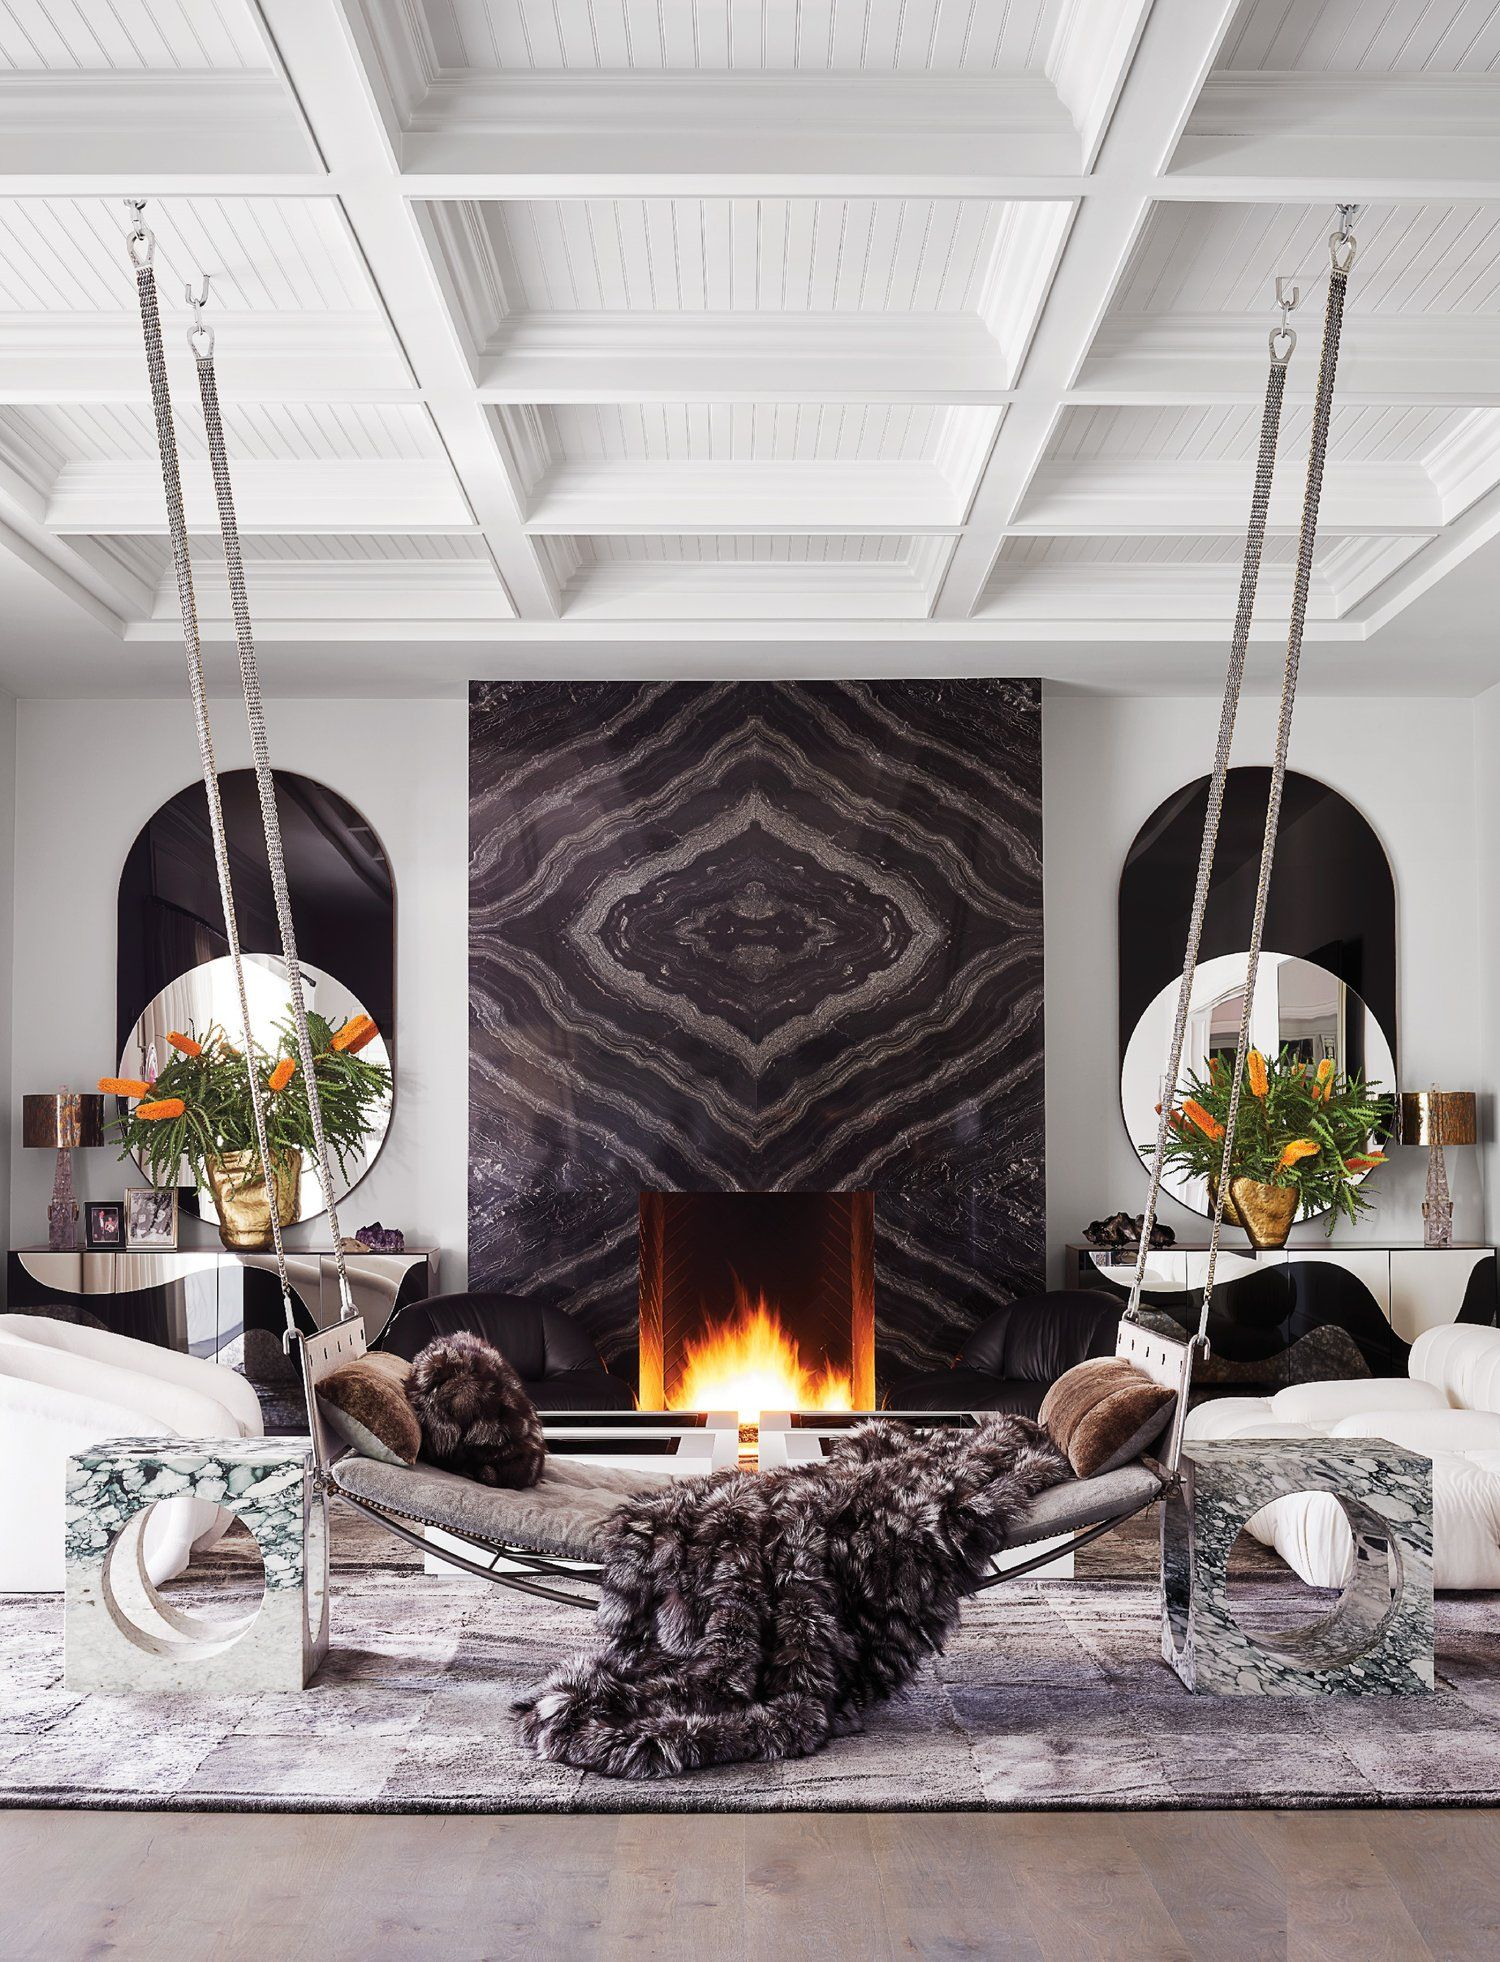 Chez Kylie Jenner Residence Design Project By Martyn Lawrence Aluminr Bespoke Luxury Metal Door Manufacturers Kylie Jenner Living Room Decor Modern Decor